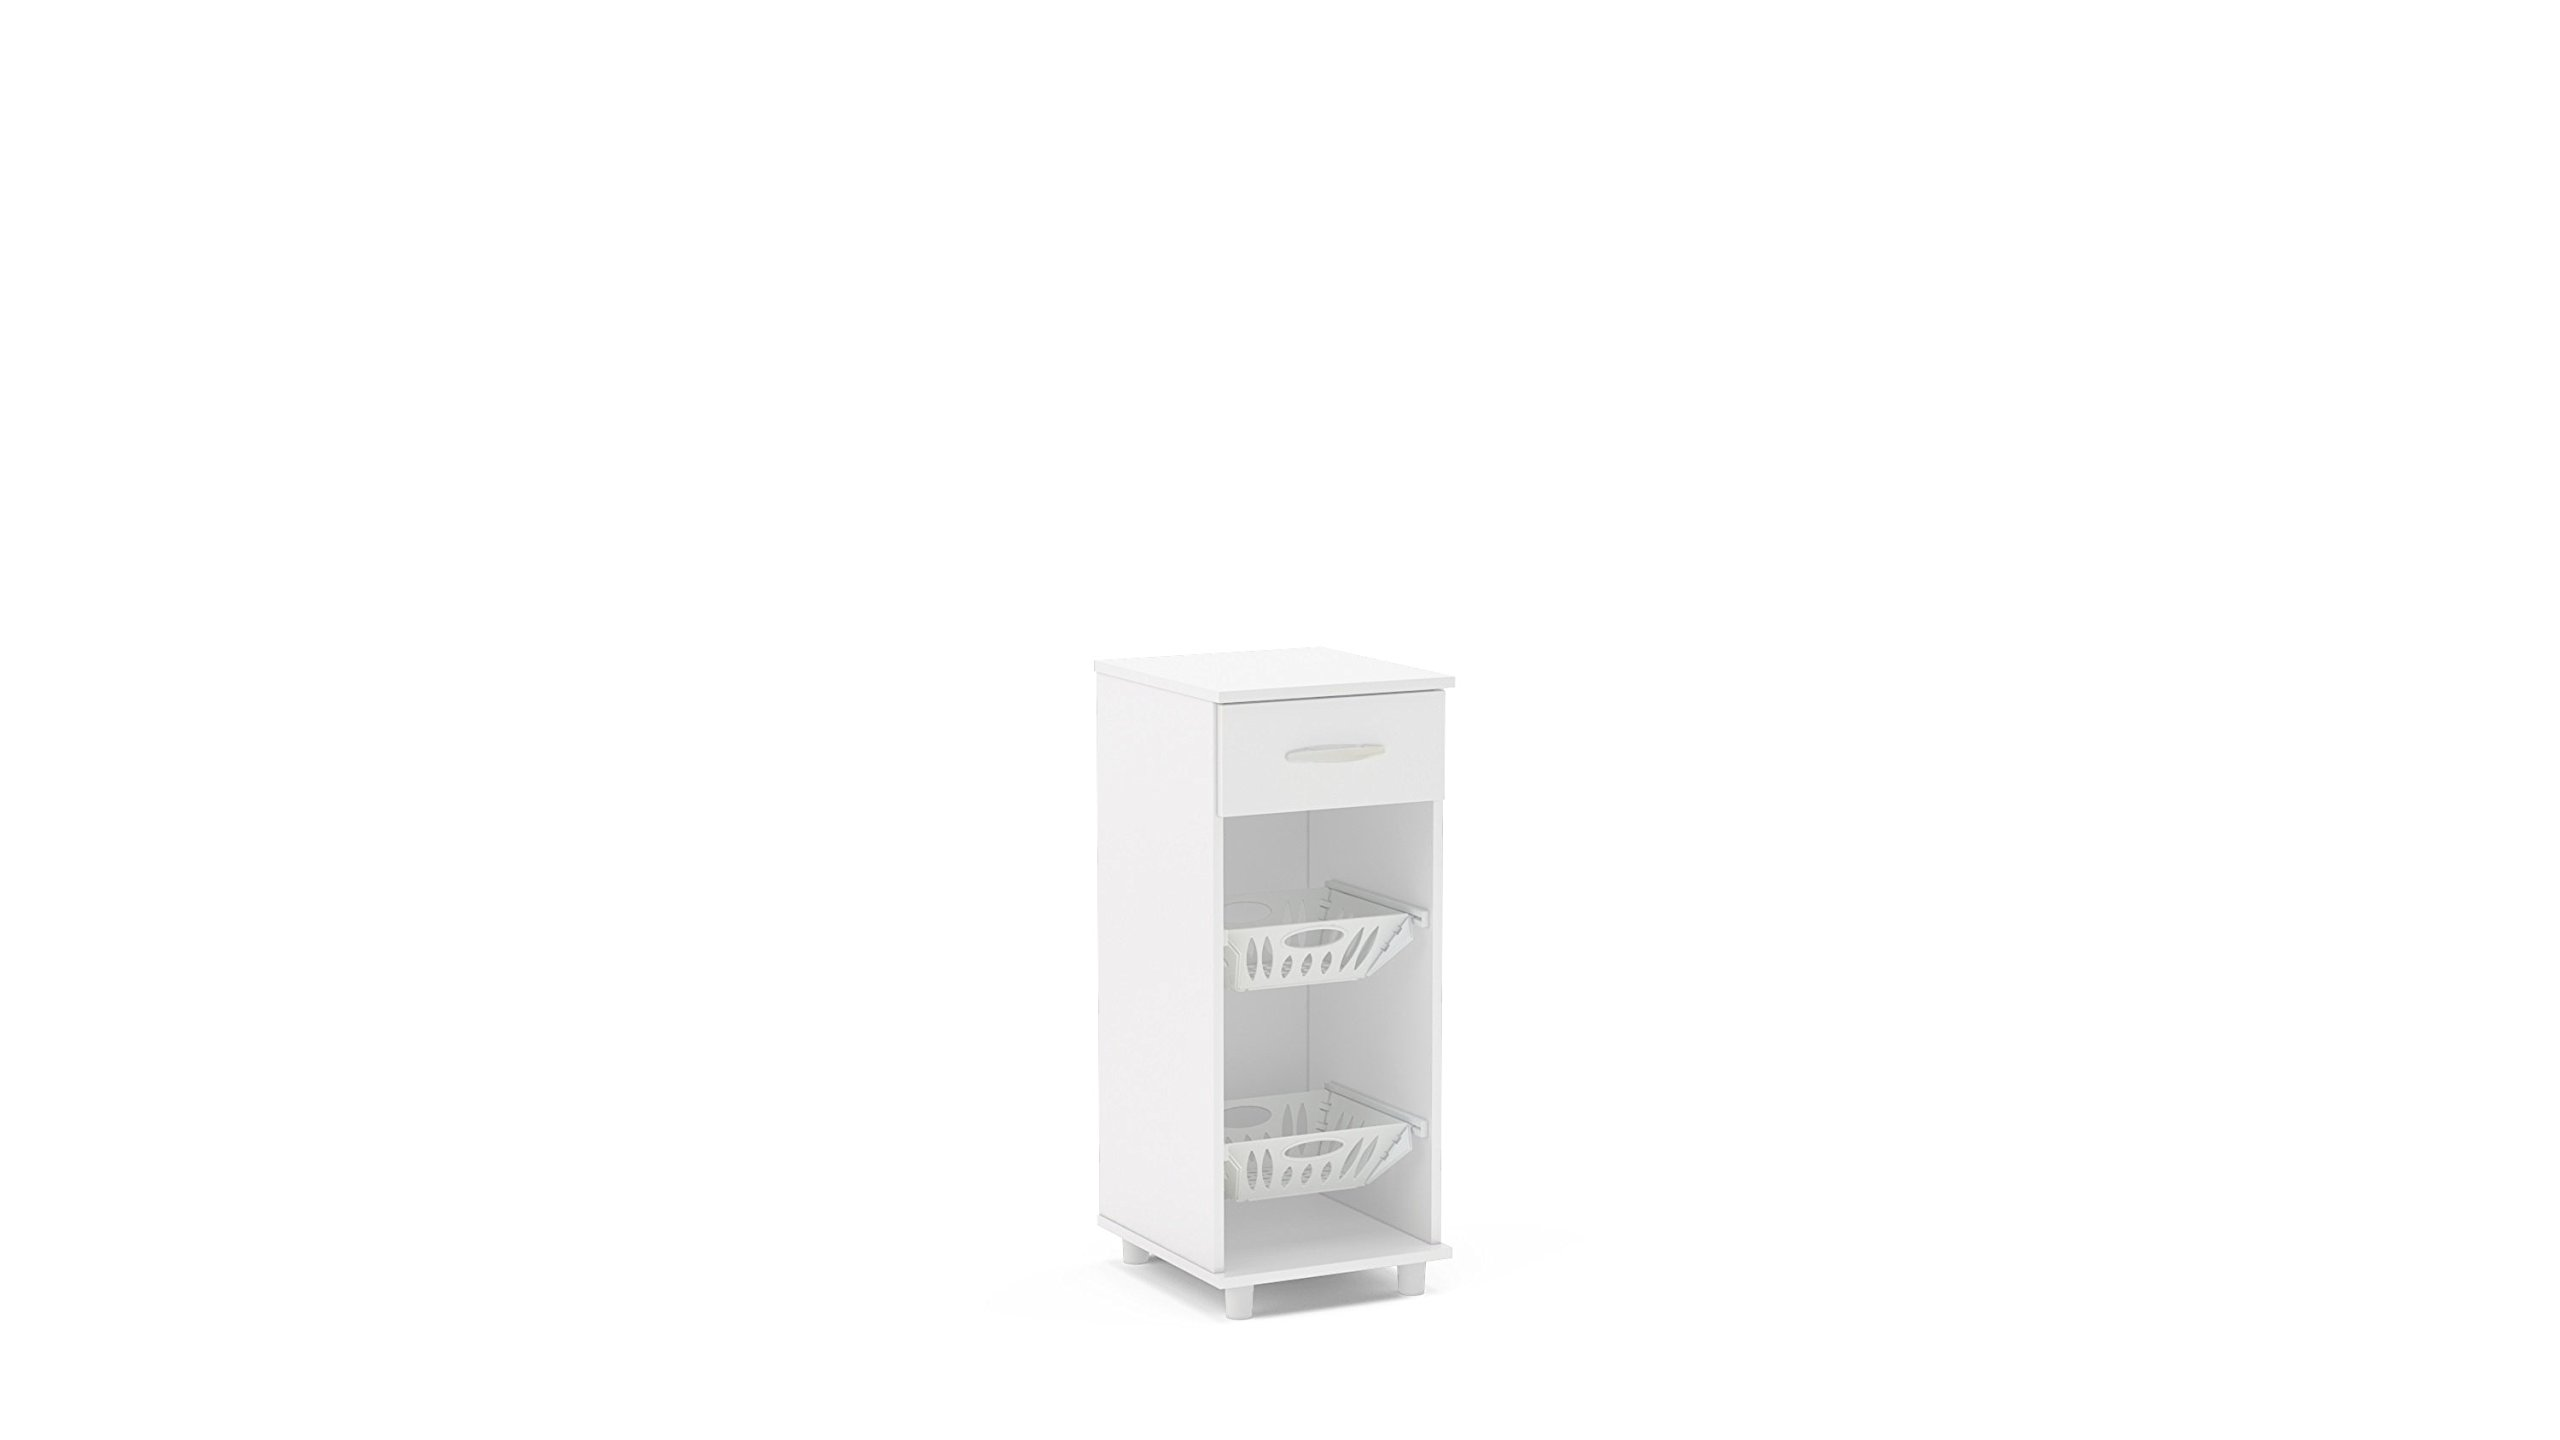 Polifurniture 120933420001 Compact Fruit Storage Cabinet, White